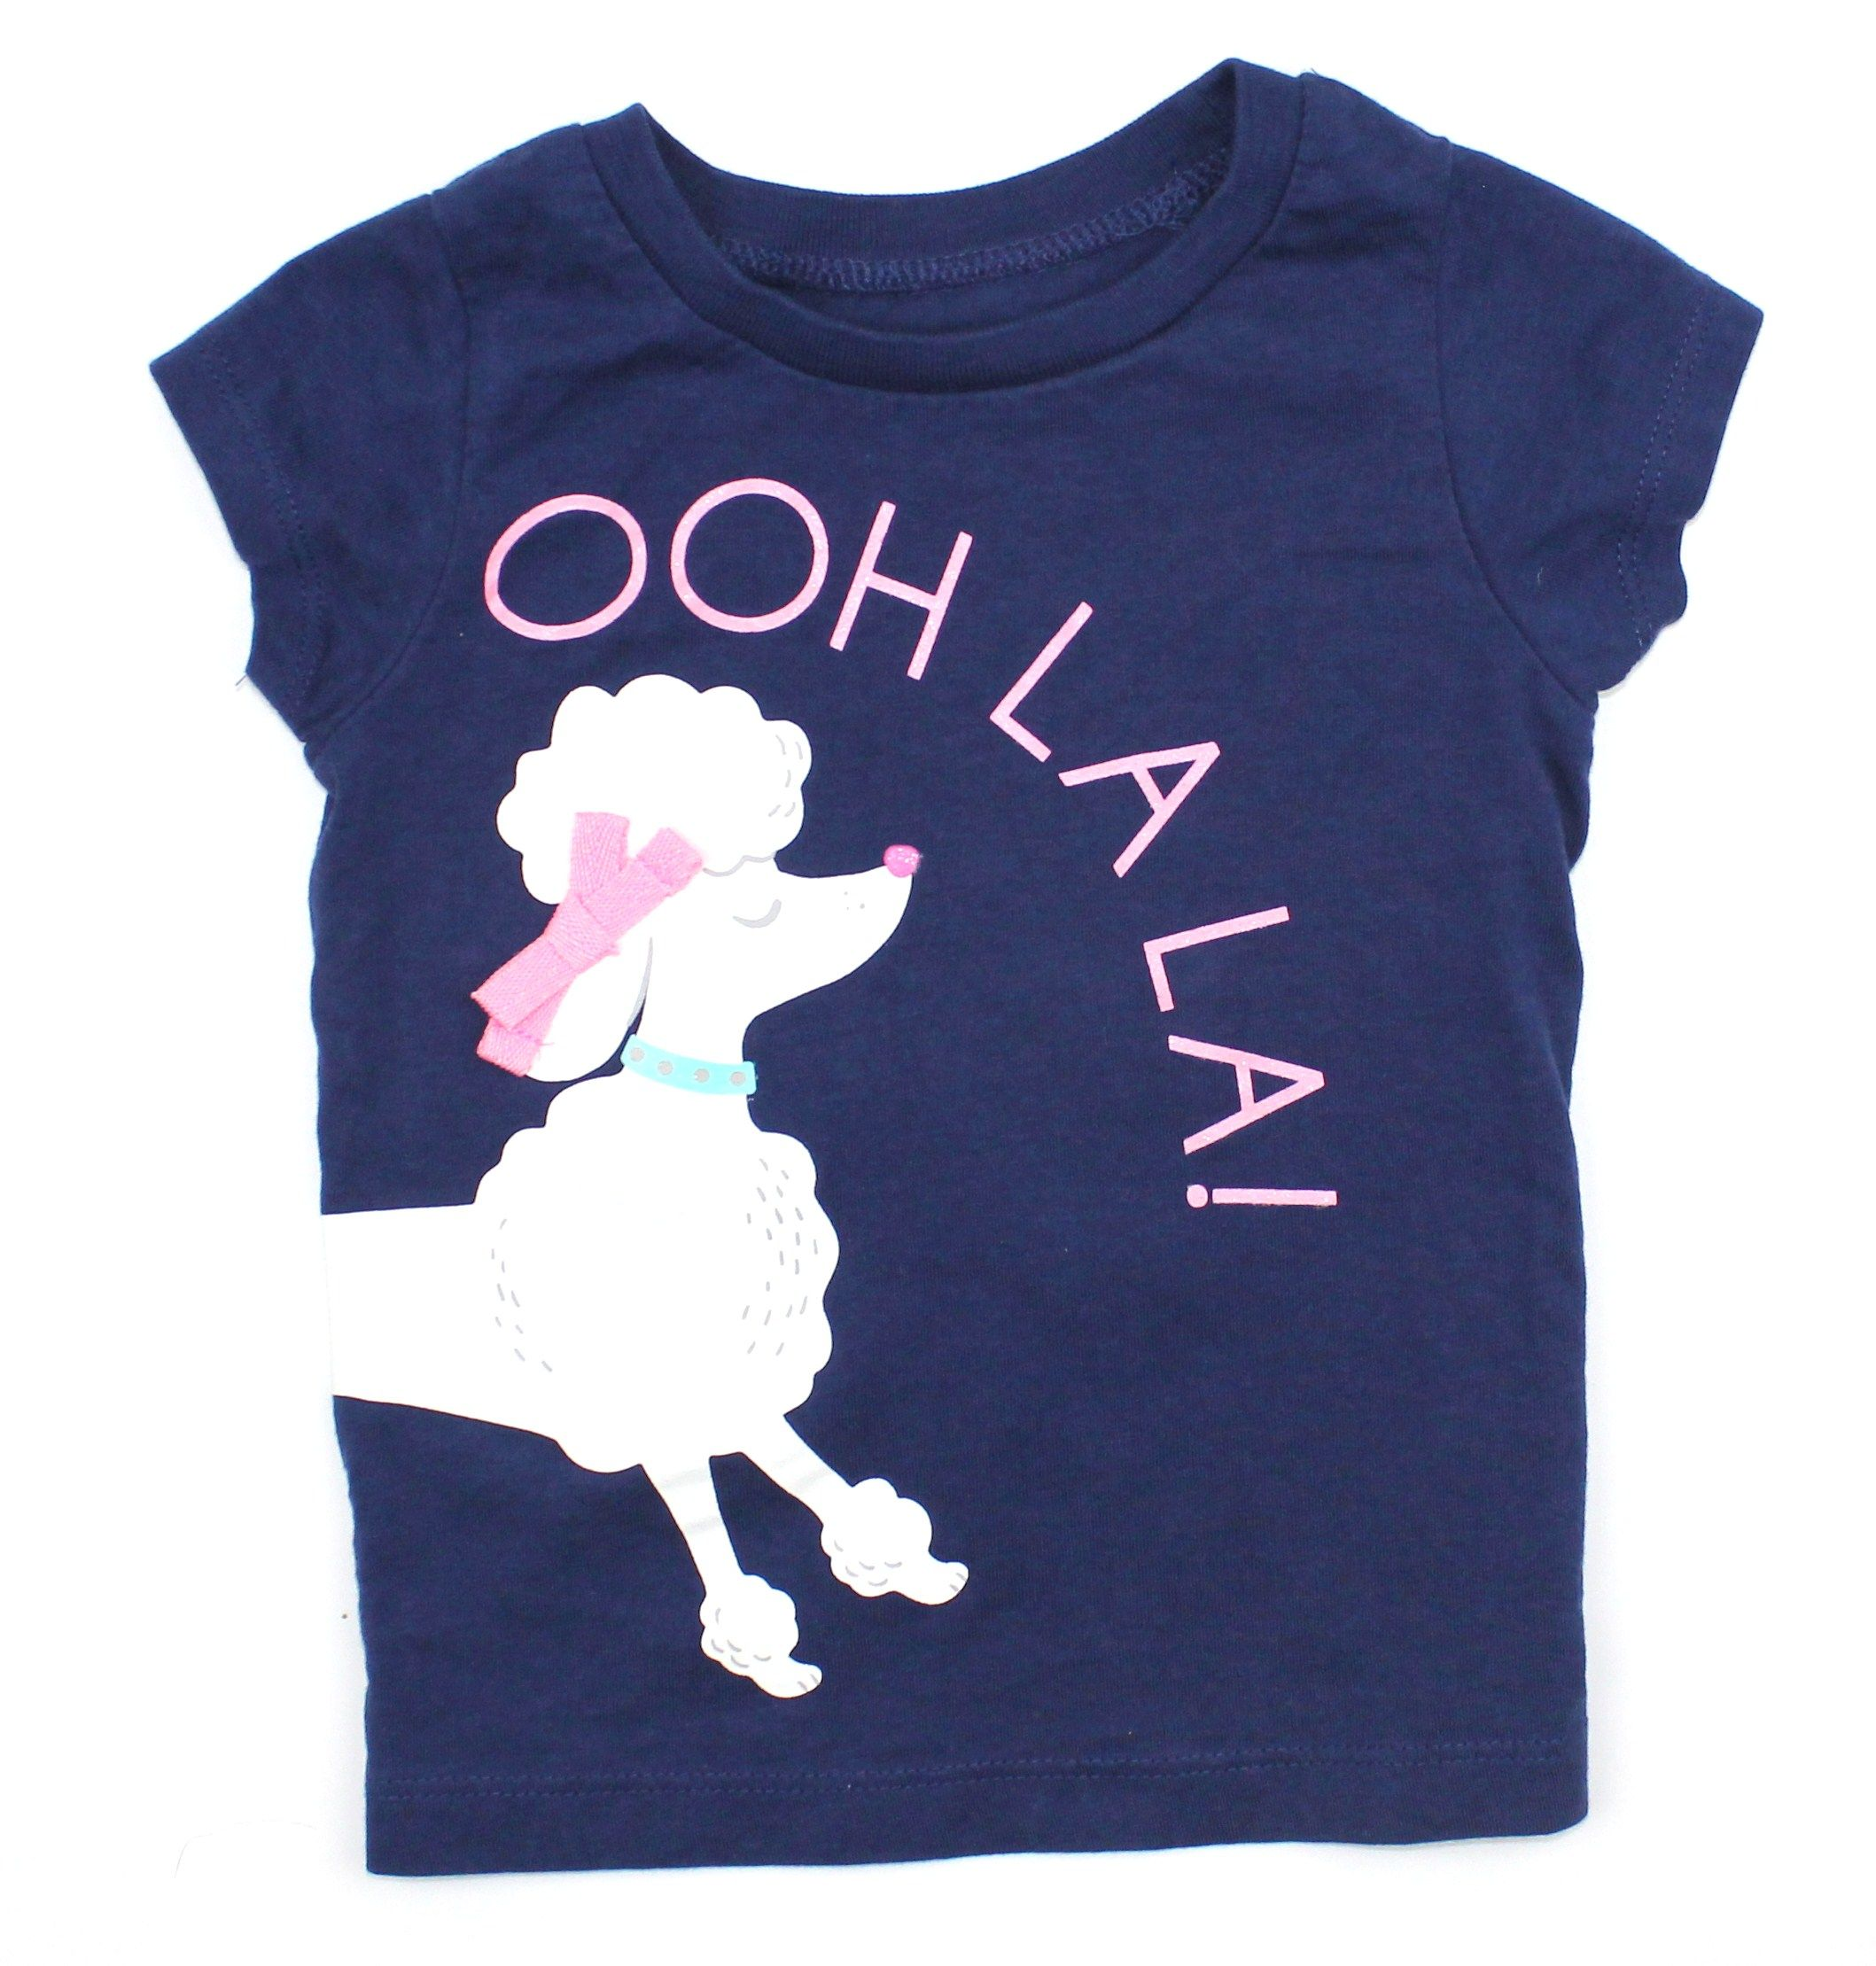 Toddler Girls Navy T shirt with Poodle and Ooh La La Size 18